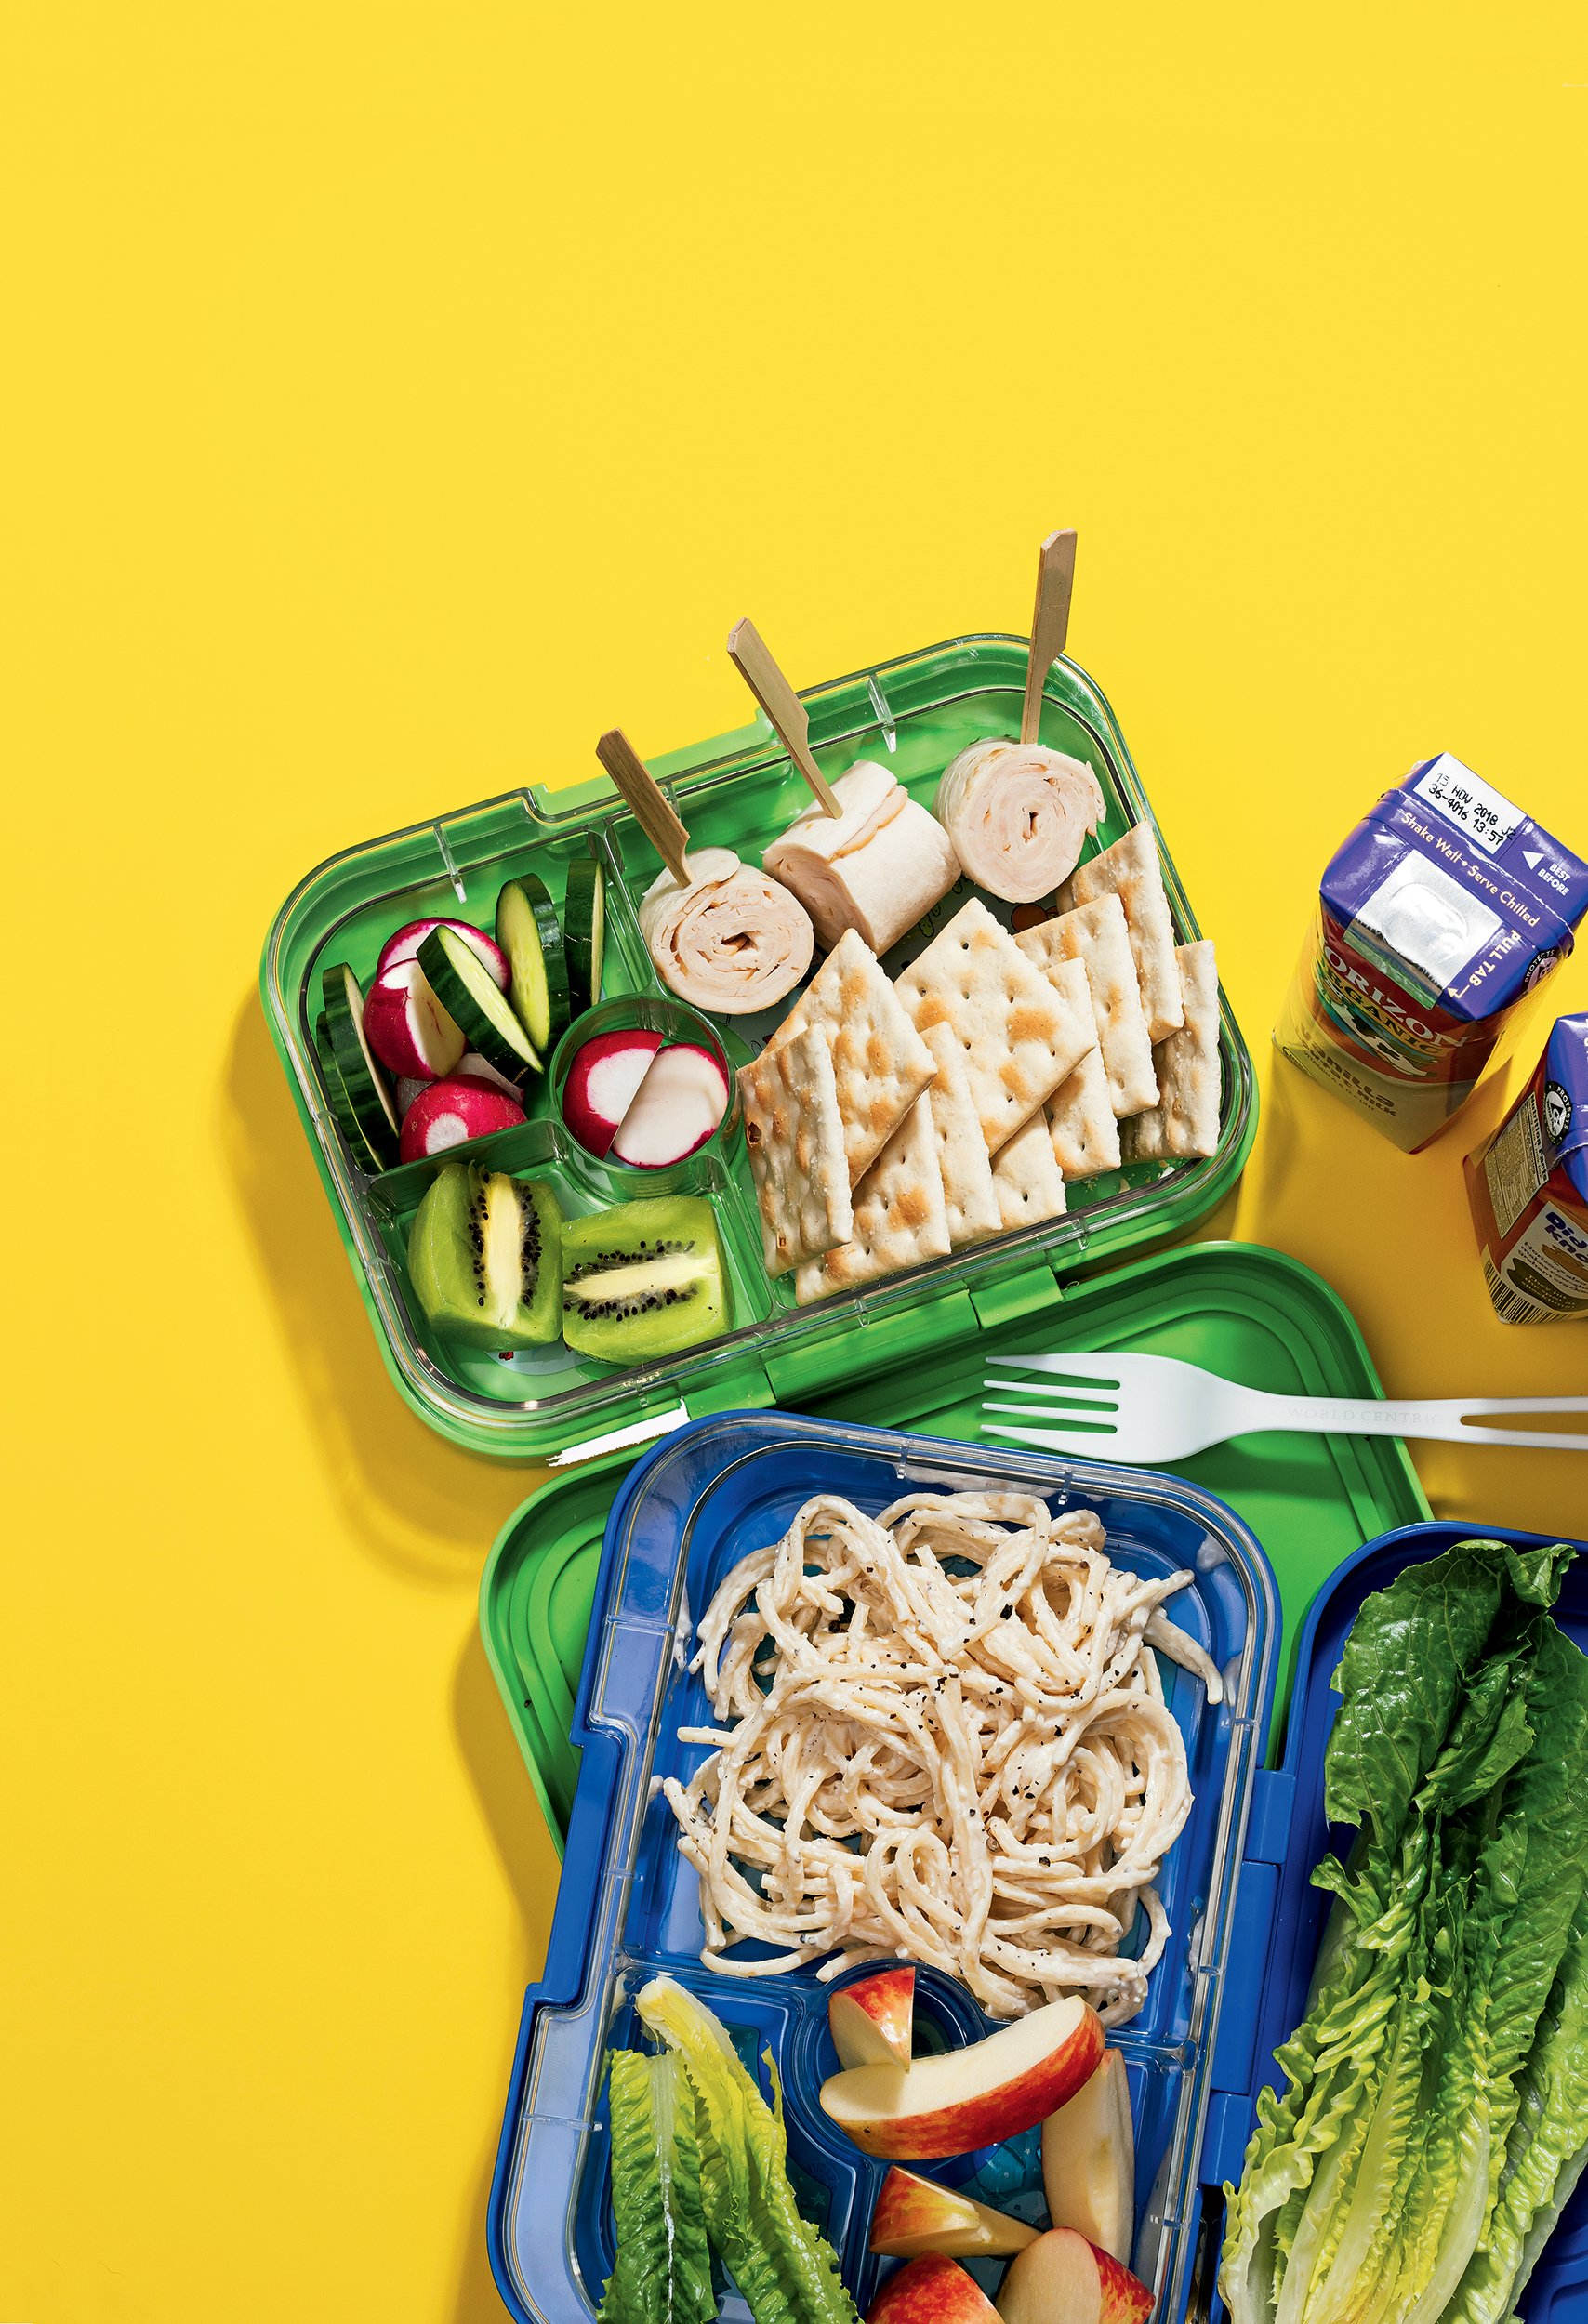 What Do Top Chefs In The Dc Area Pack Their Kids For Lunch